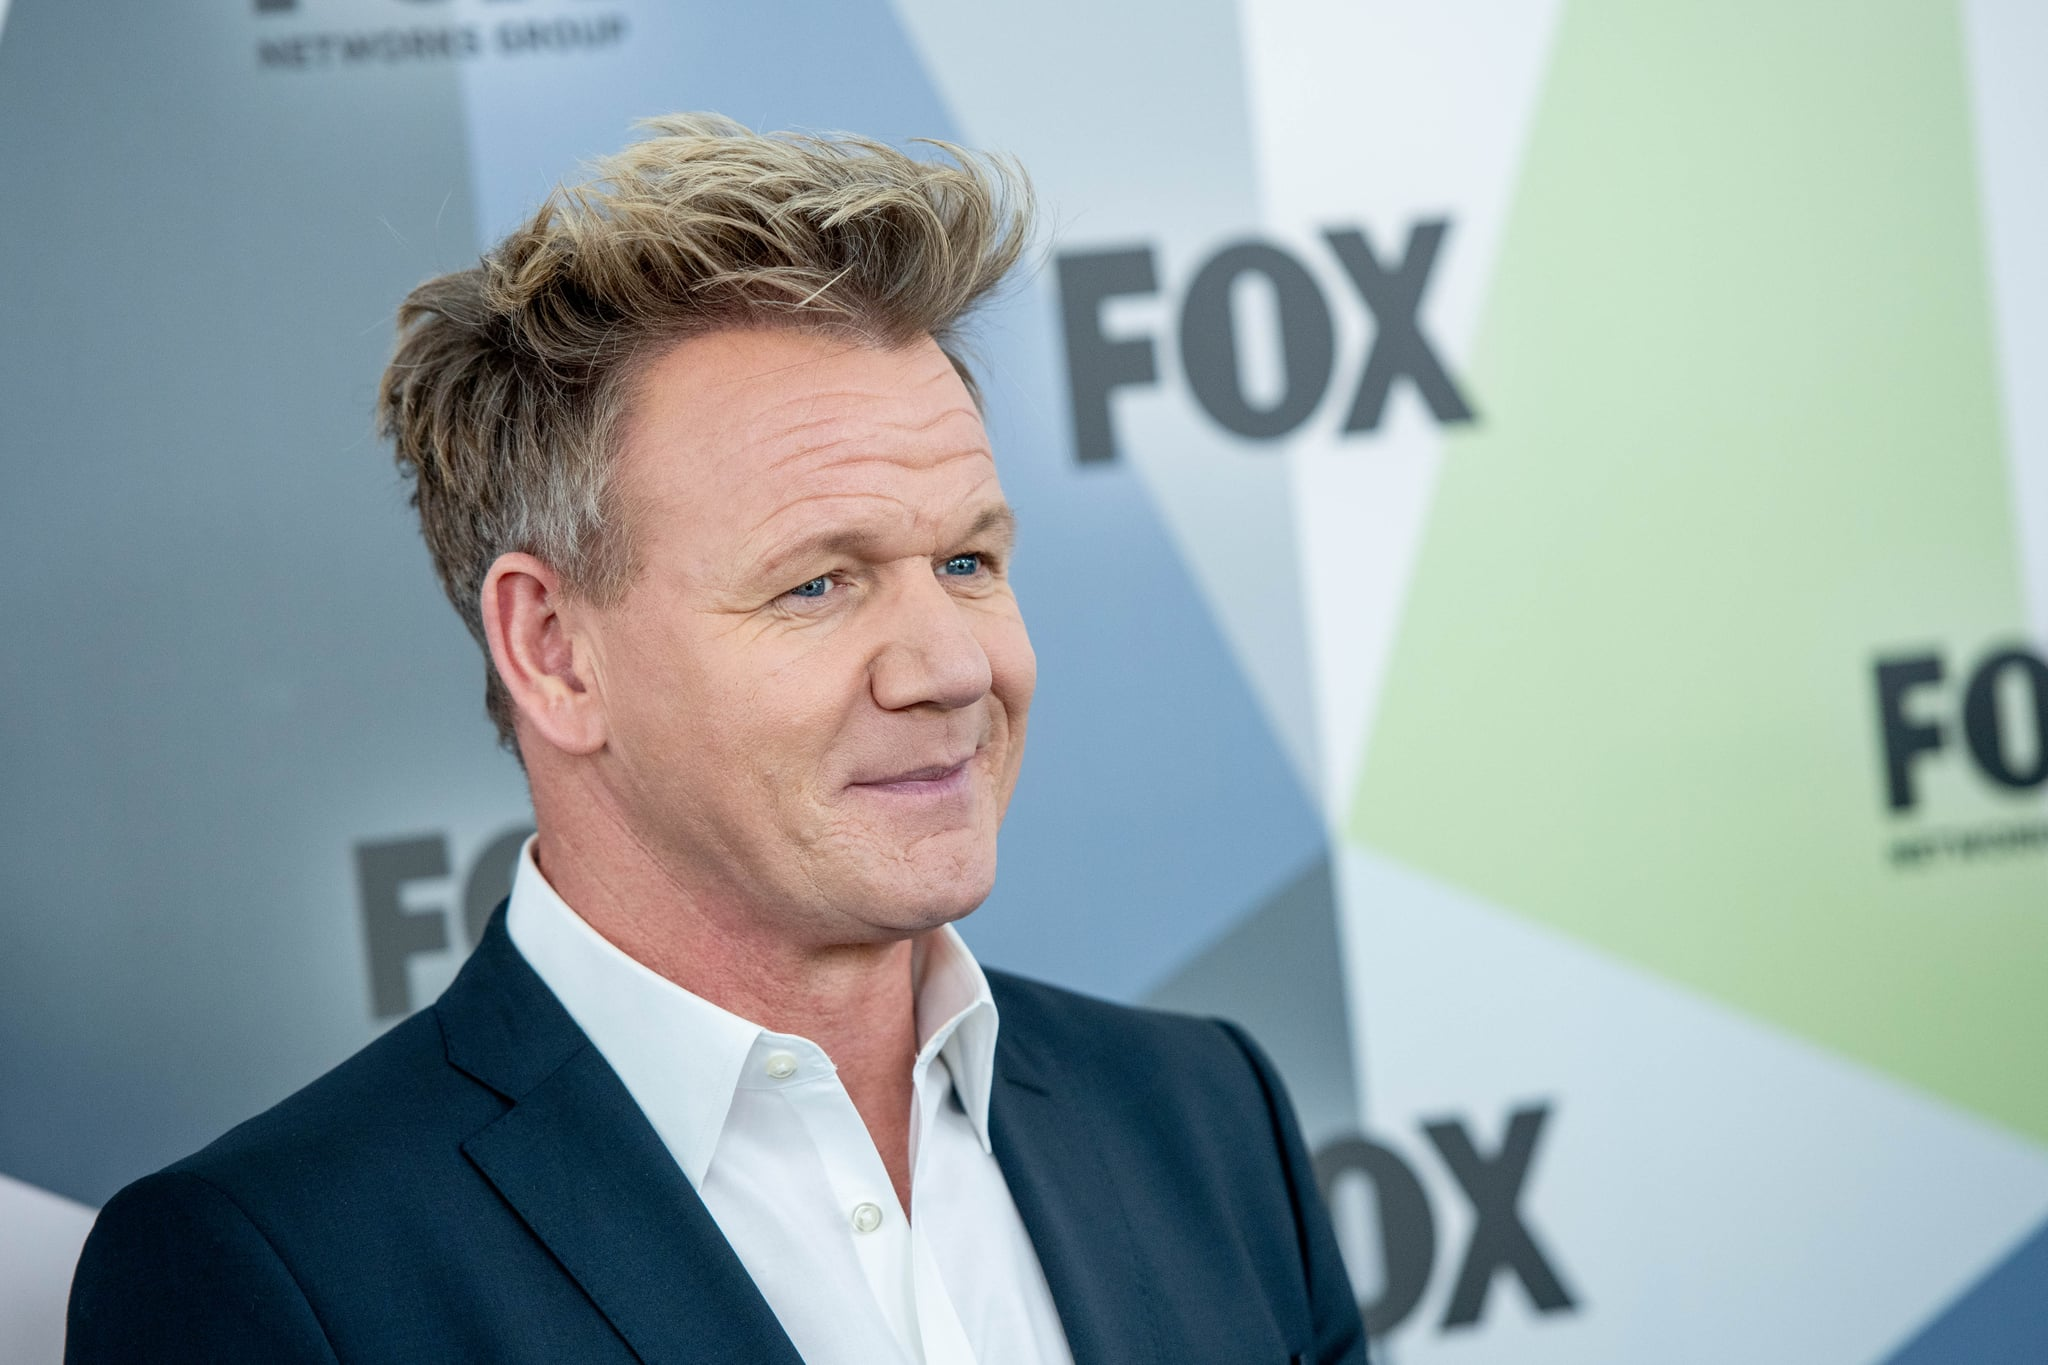 NEW YORK, NY - MAY 14:  Gordon Ramsay attends the 2018 Fox Network Upfront at Wollman Rink, Central Park on May 14, 2018 in New York City.  (Photo by Roy Rochlin/Getty Images)